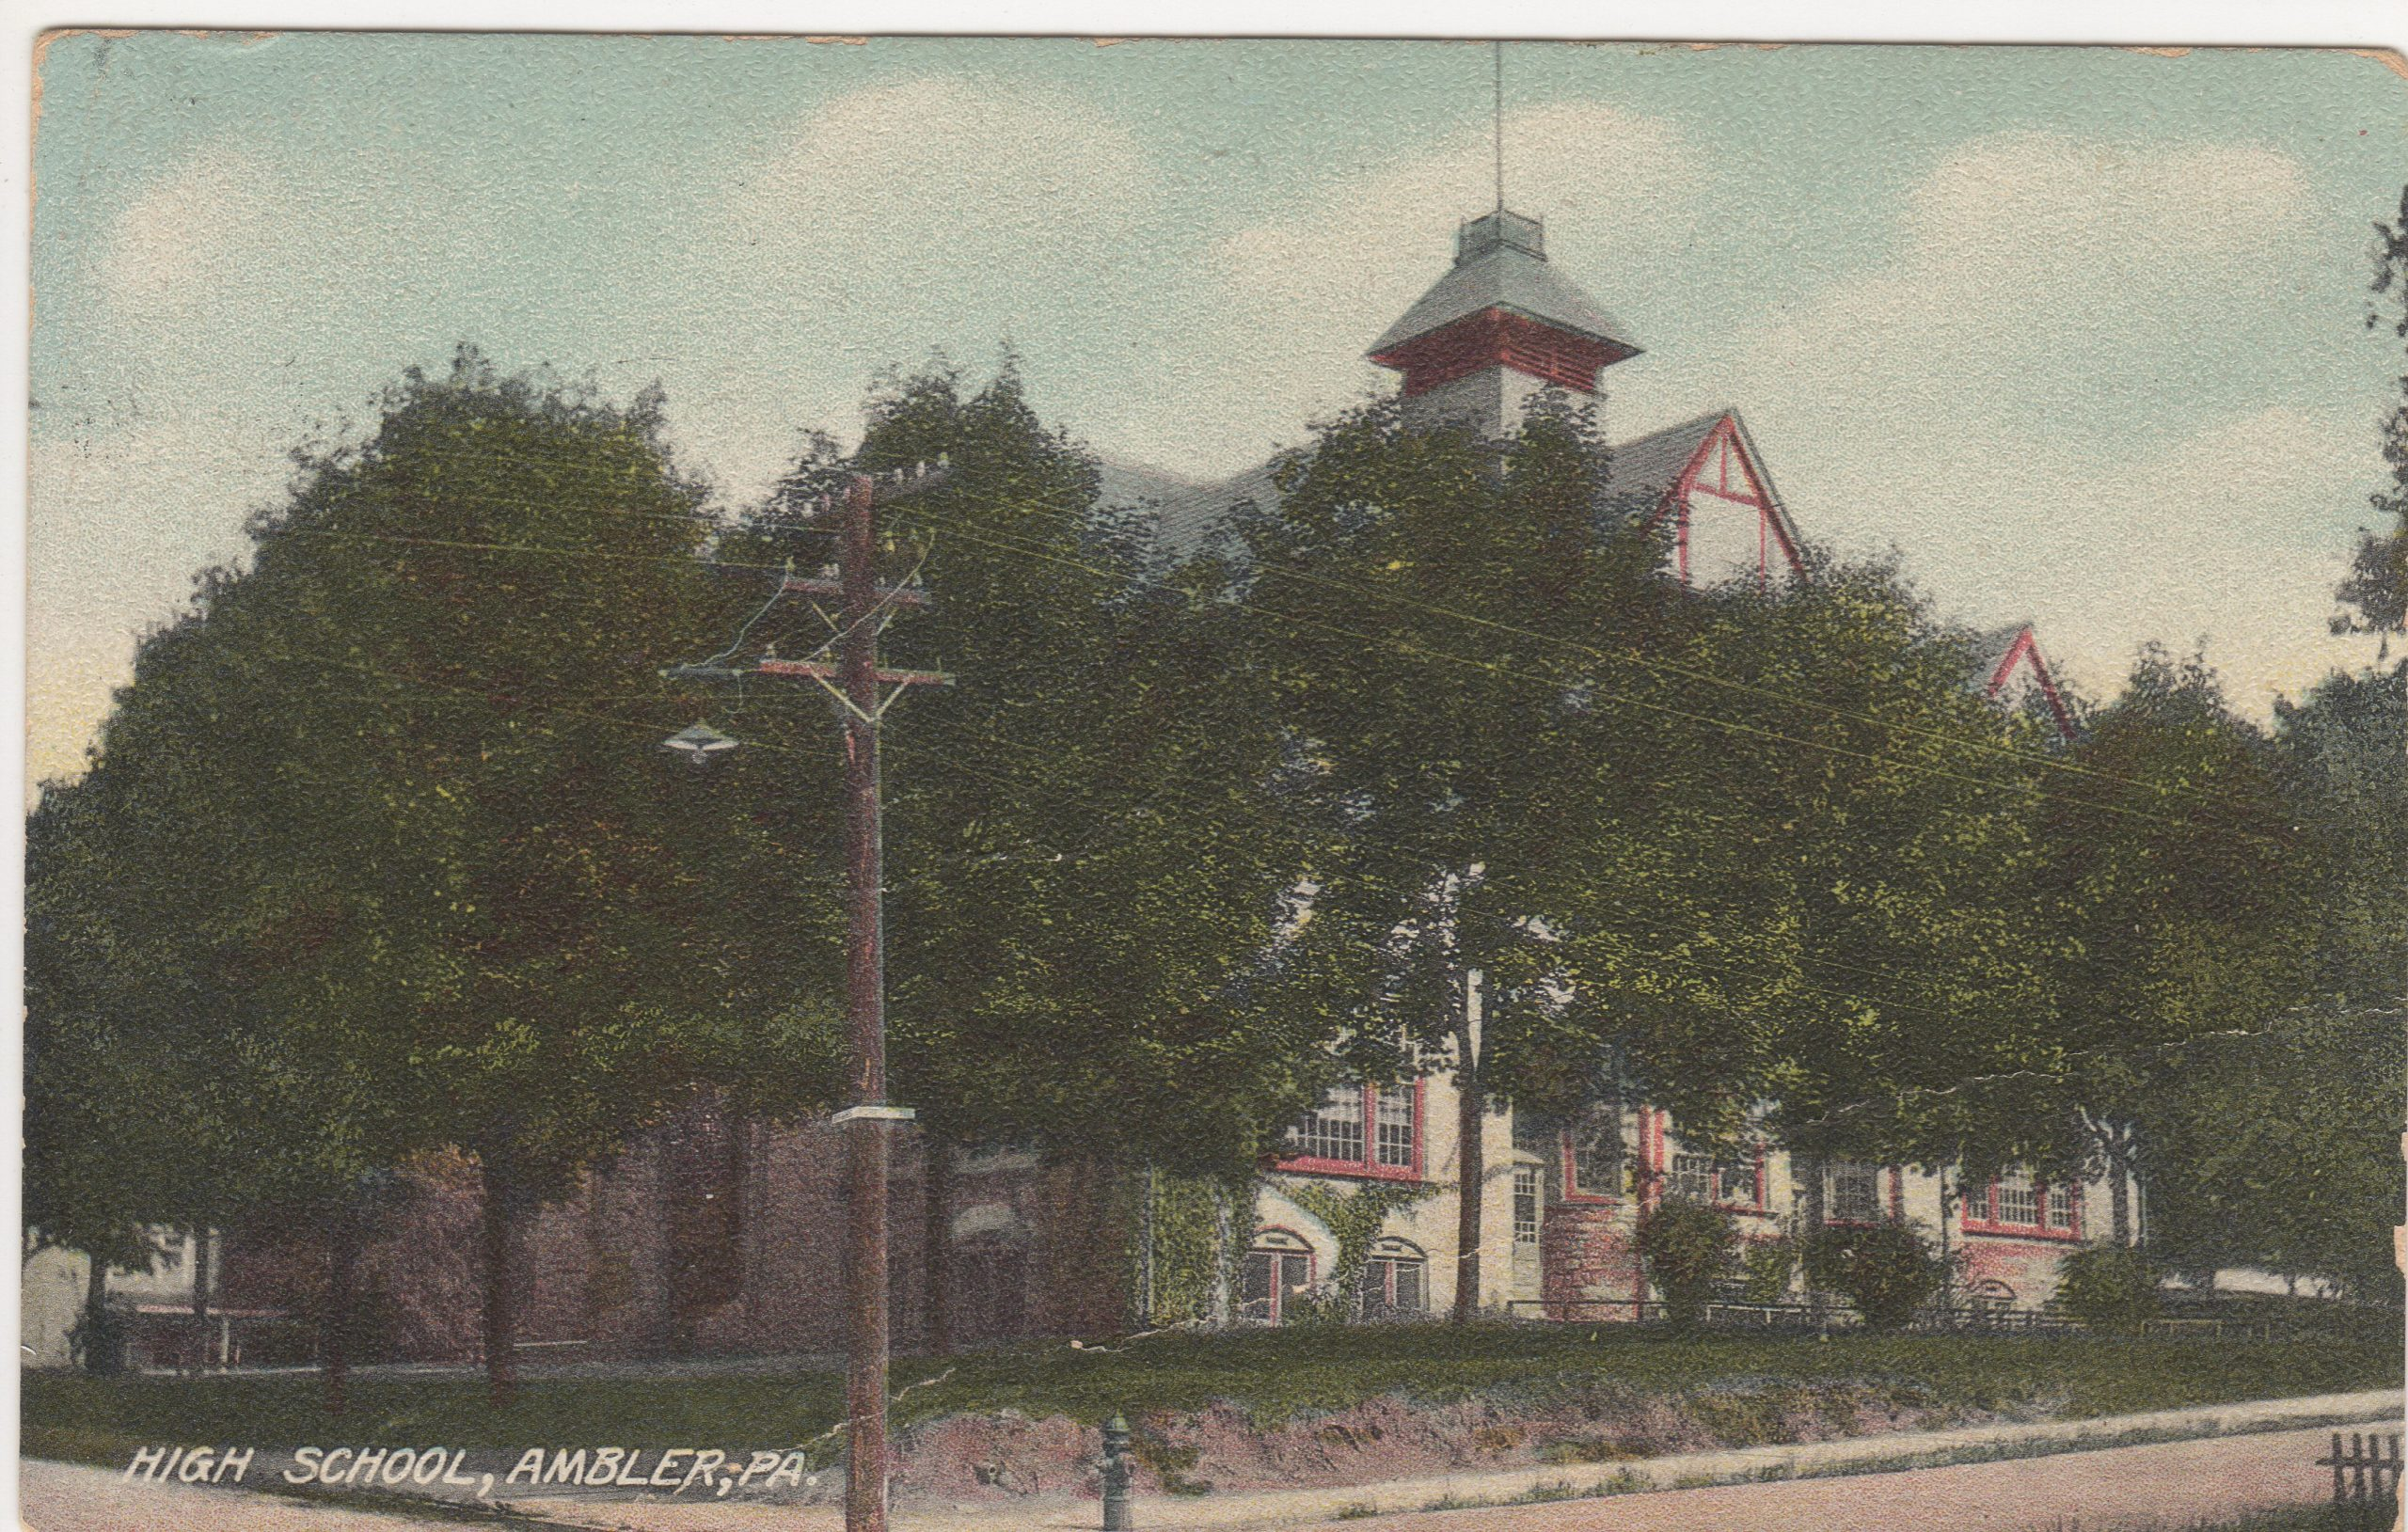 4125.2 Ambler Pa Postcard_Ambler Forest Avenue High School_circa 1910 (2)